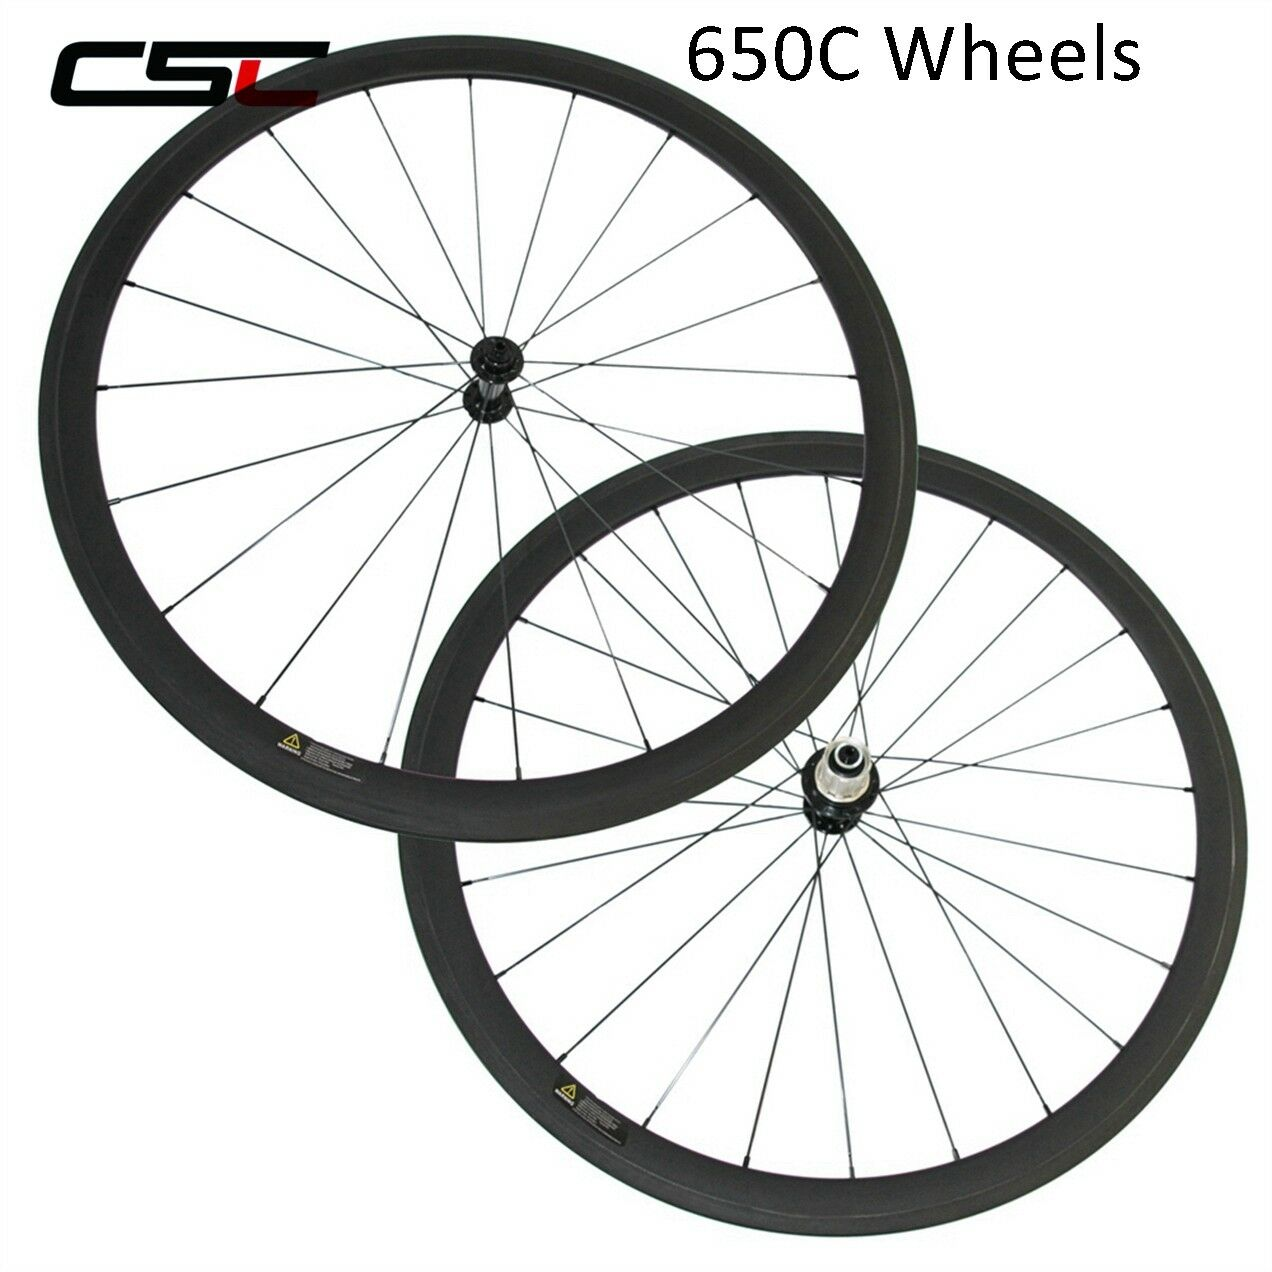 650C 50mm Clincher Tubeless Bike Carbon Road Bicycle Wheels Carbon Wheelset